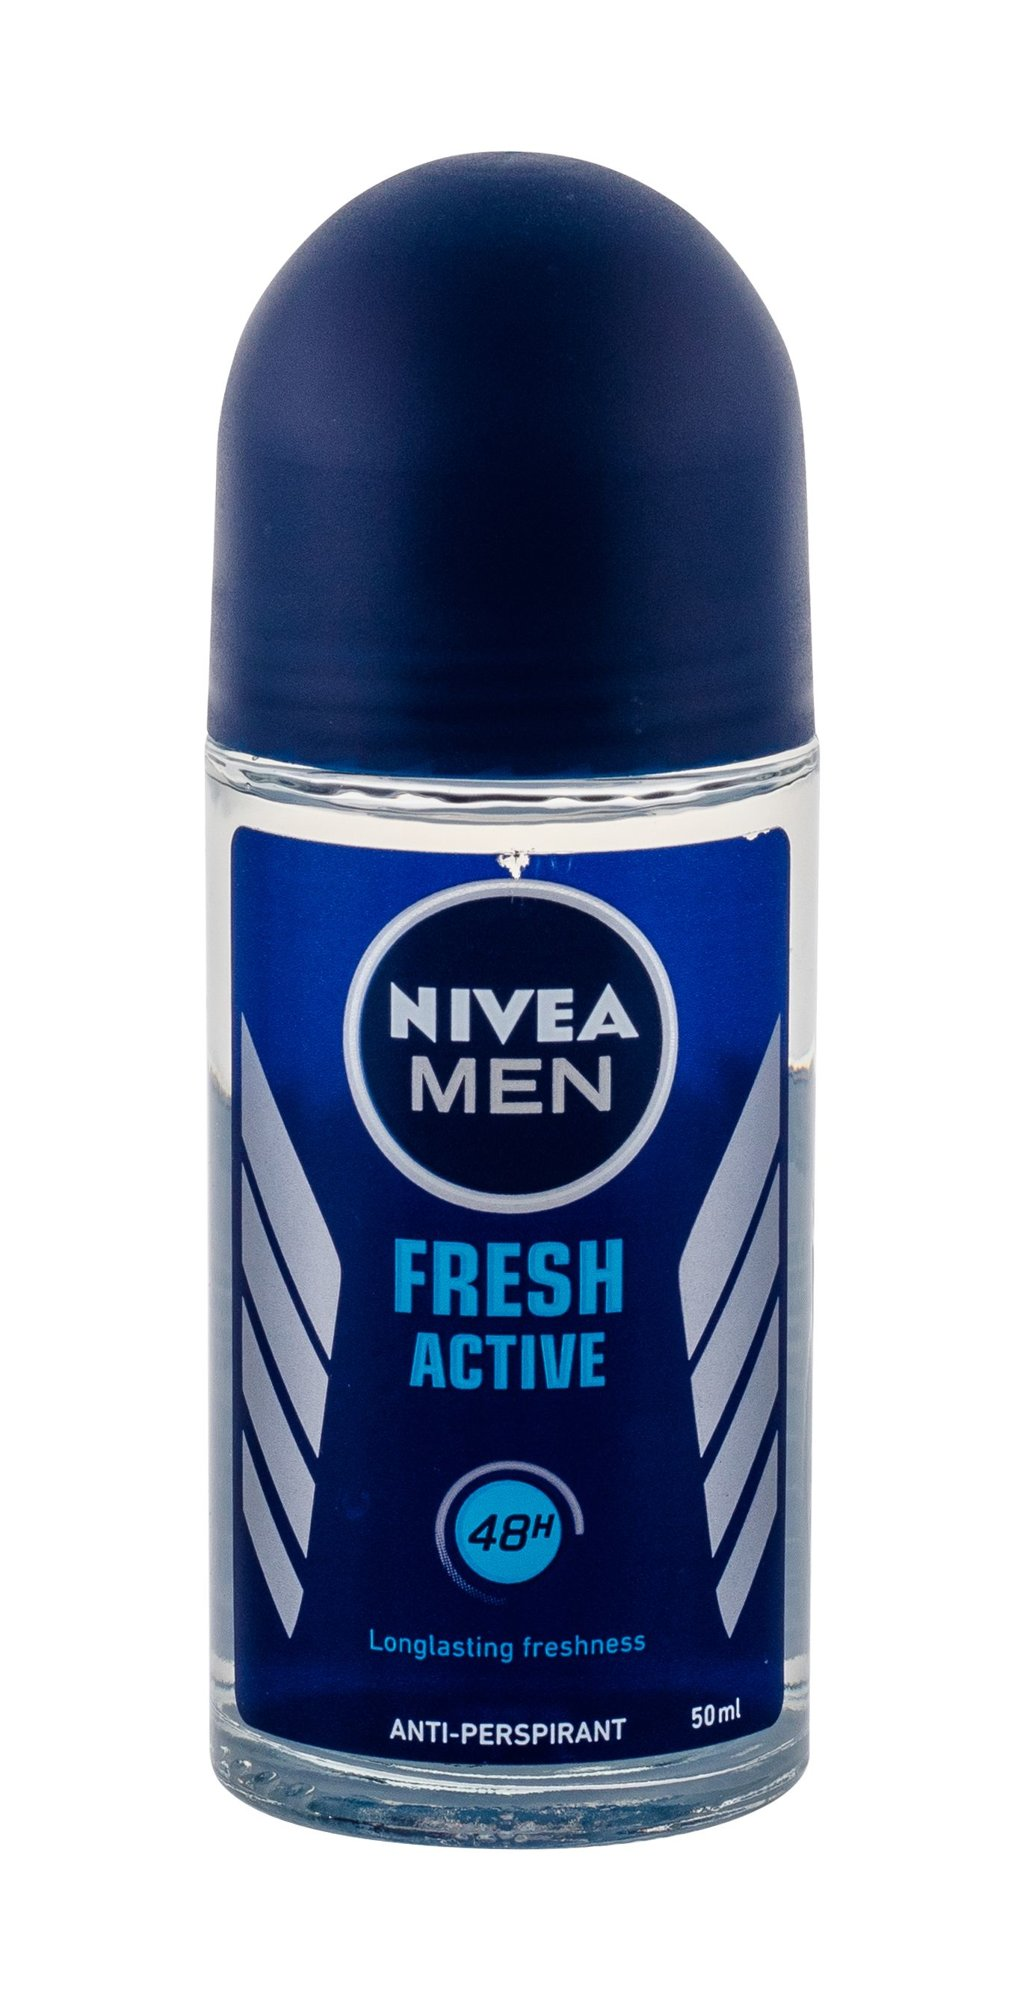 Nivea Men Fresh Active Antiperspirant 50ml